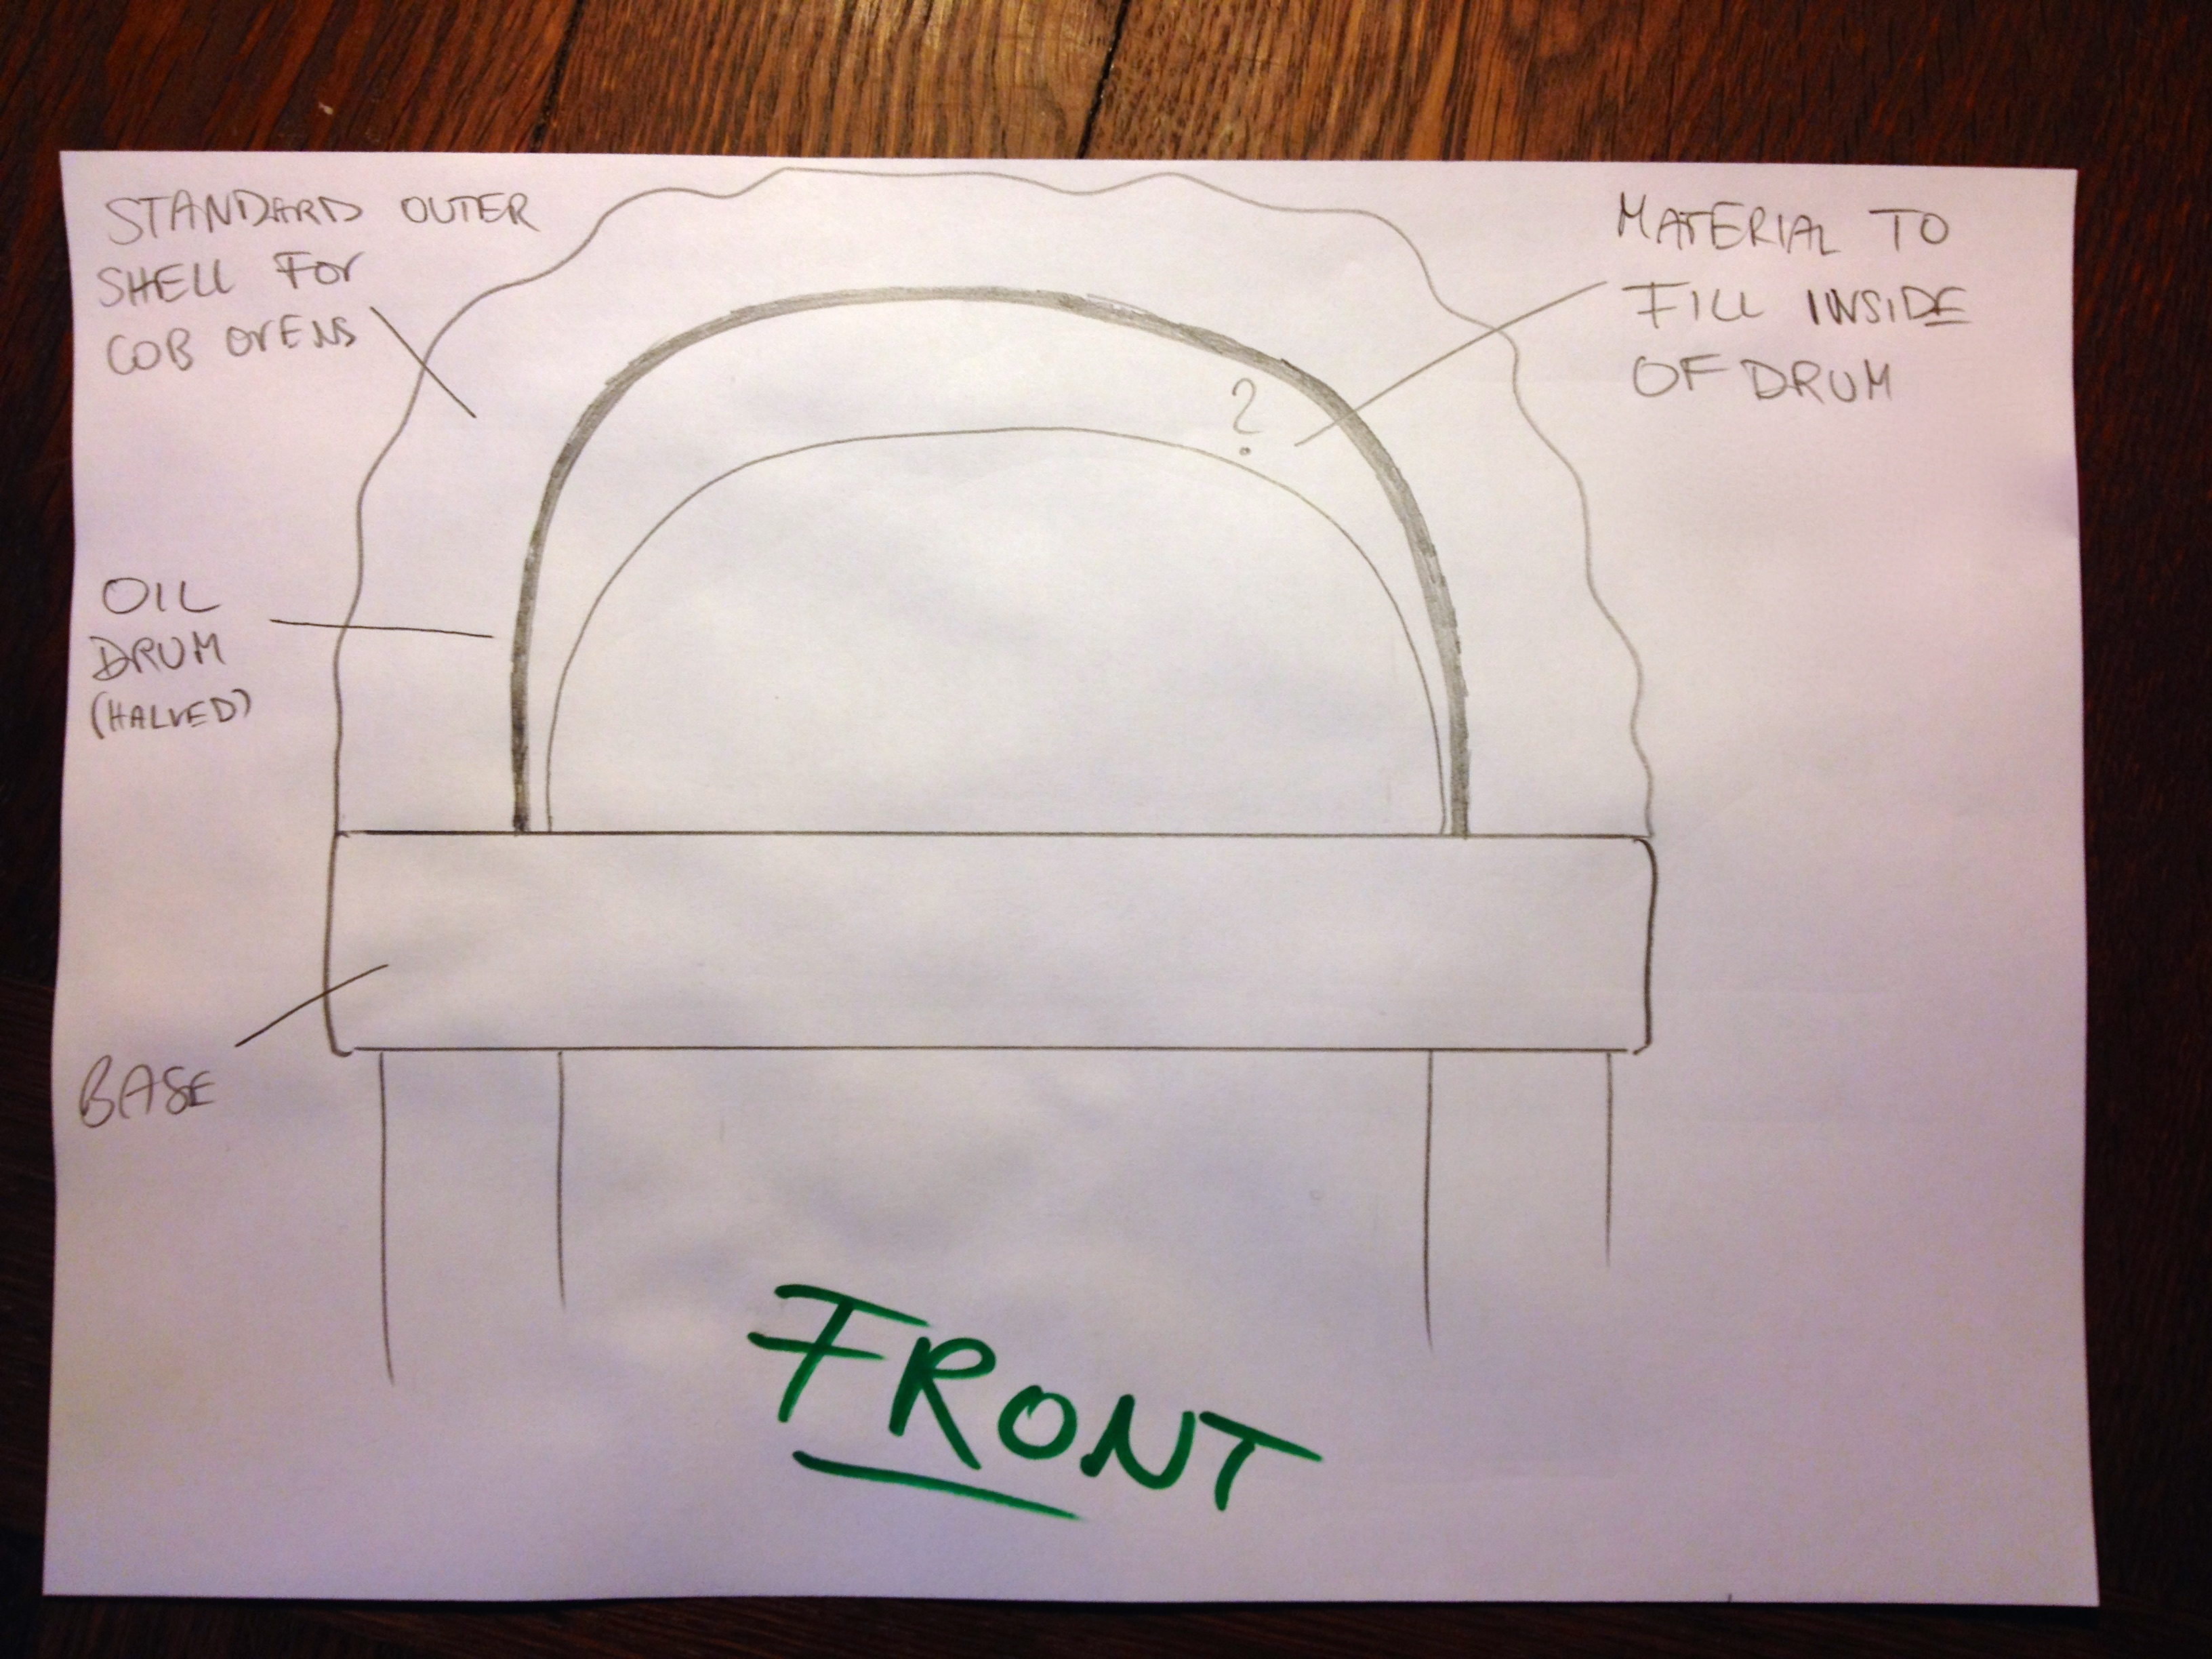 Another Guy And A Pizza Cob Oven Rocket Stoves Forum At